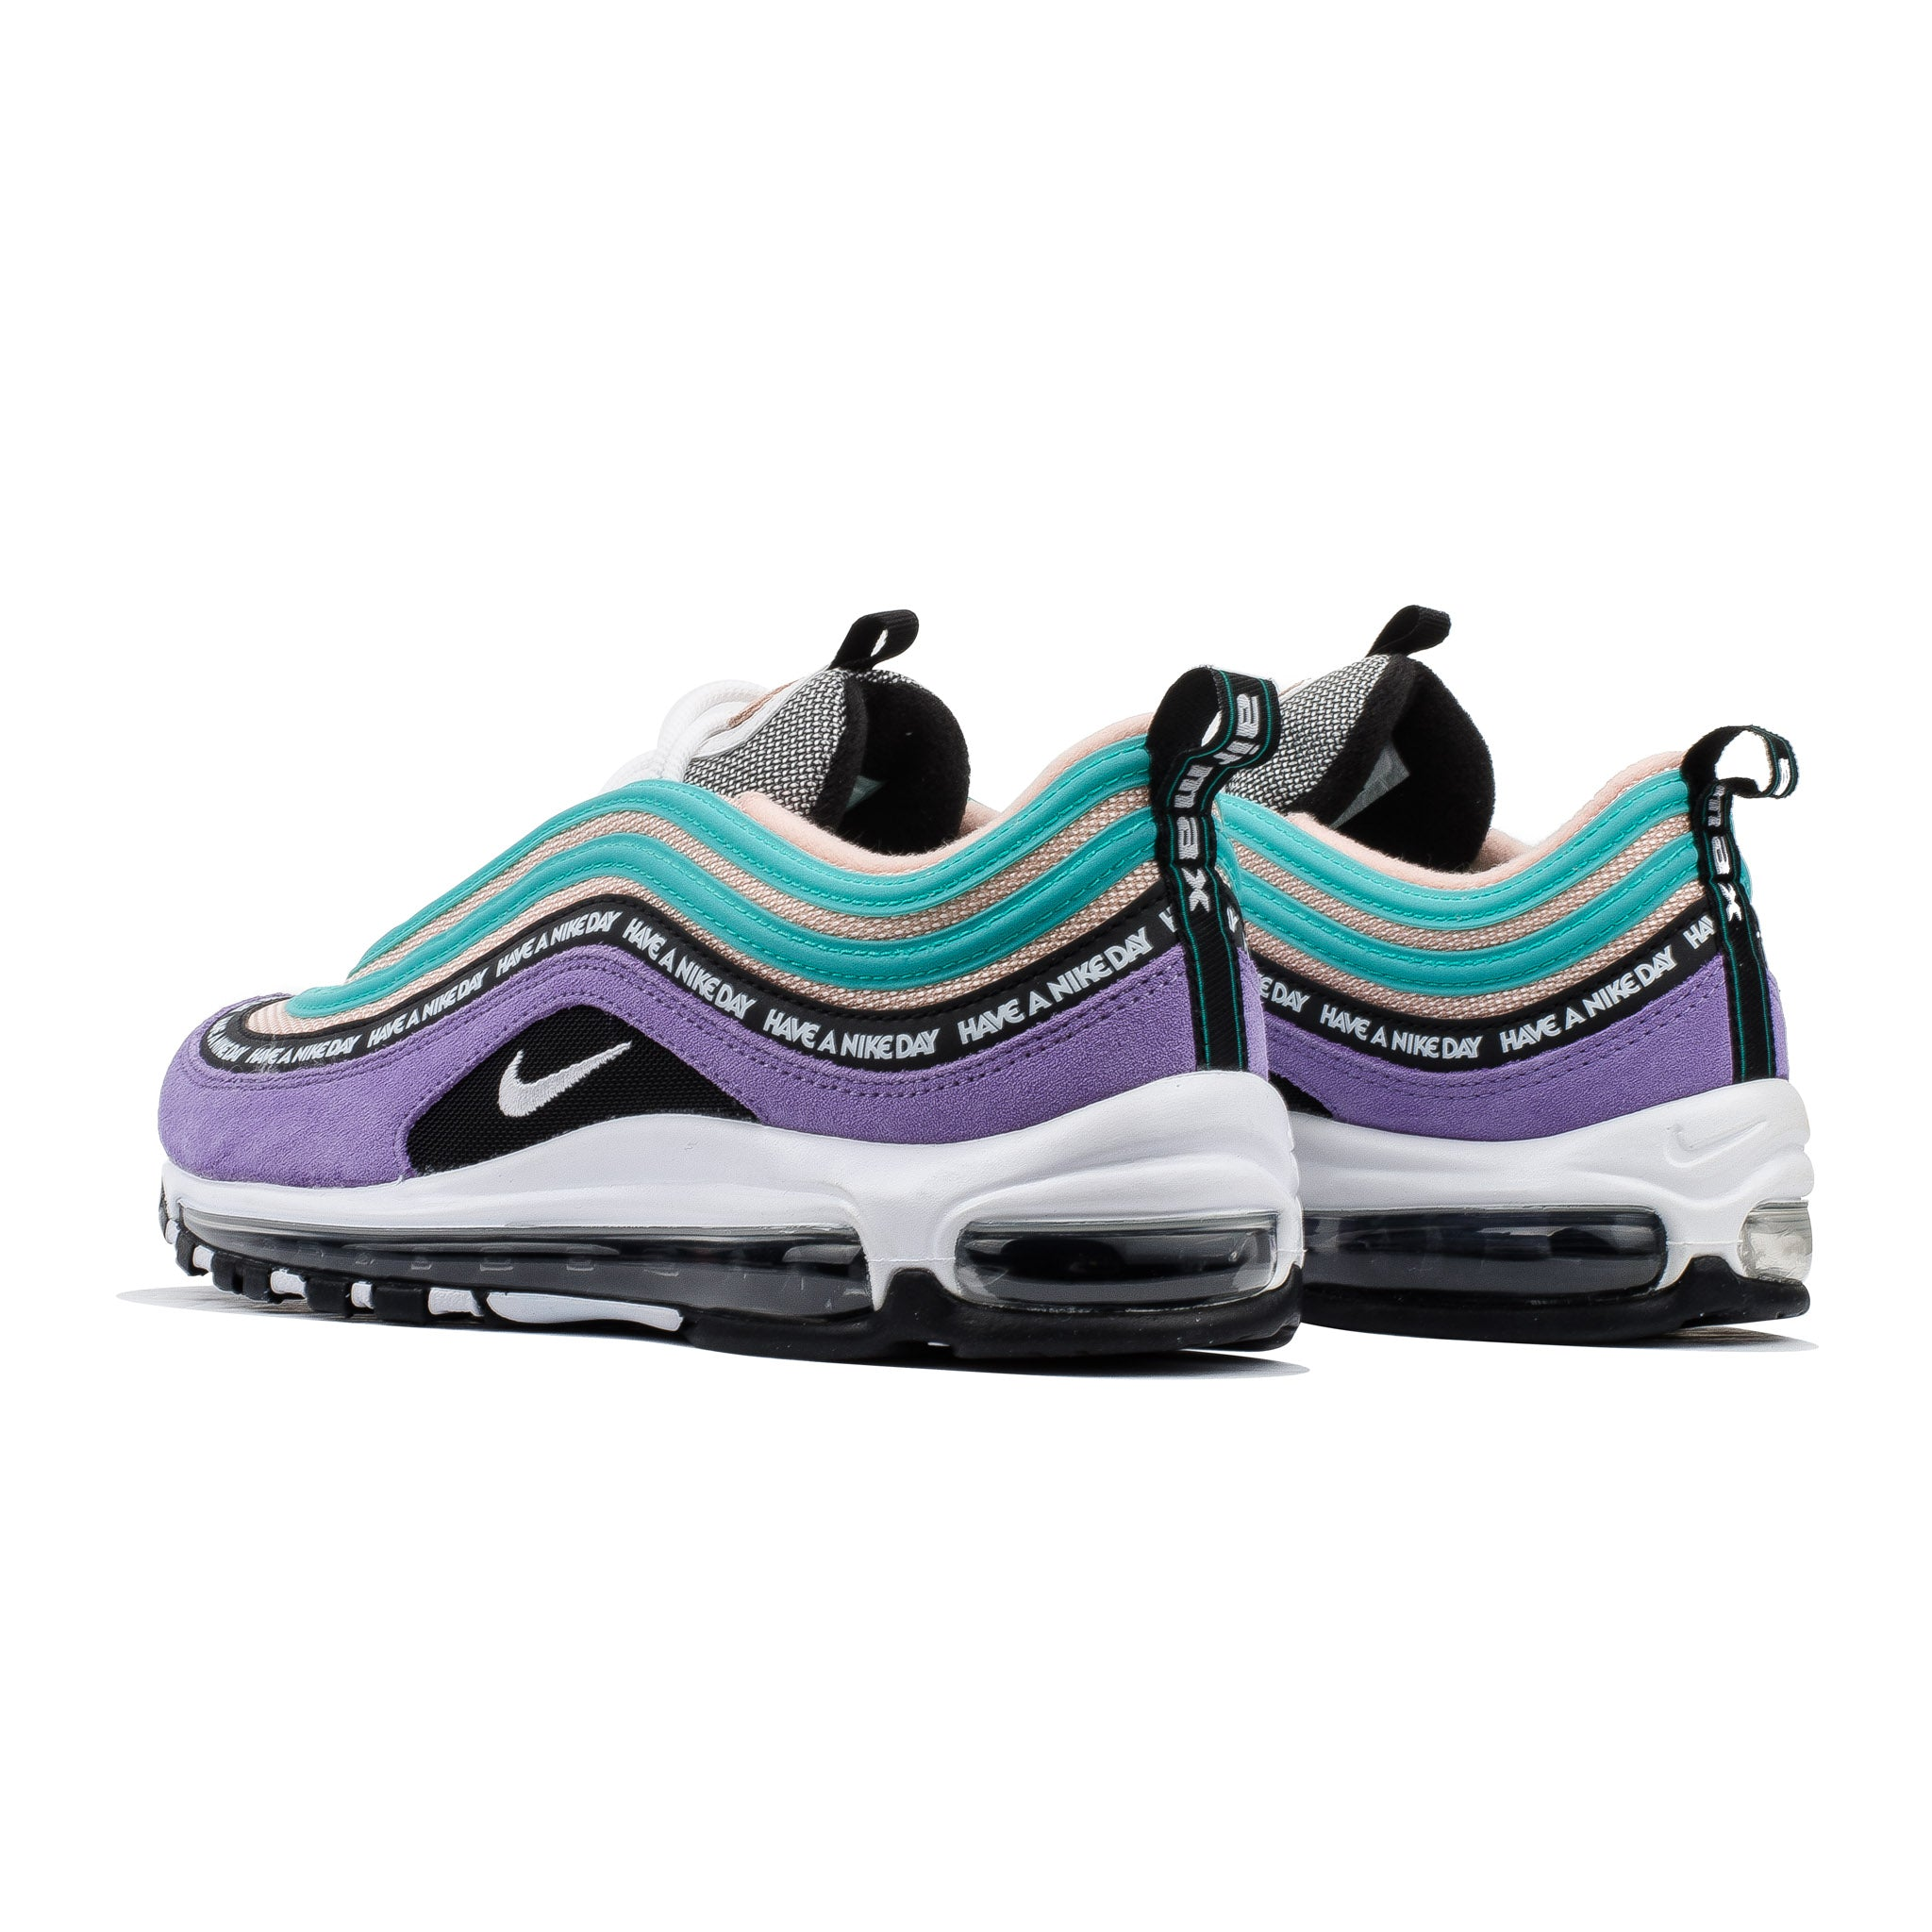 promo code 39c0f 61340 Air Max 97 ND BQ9130-500 Space Purple